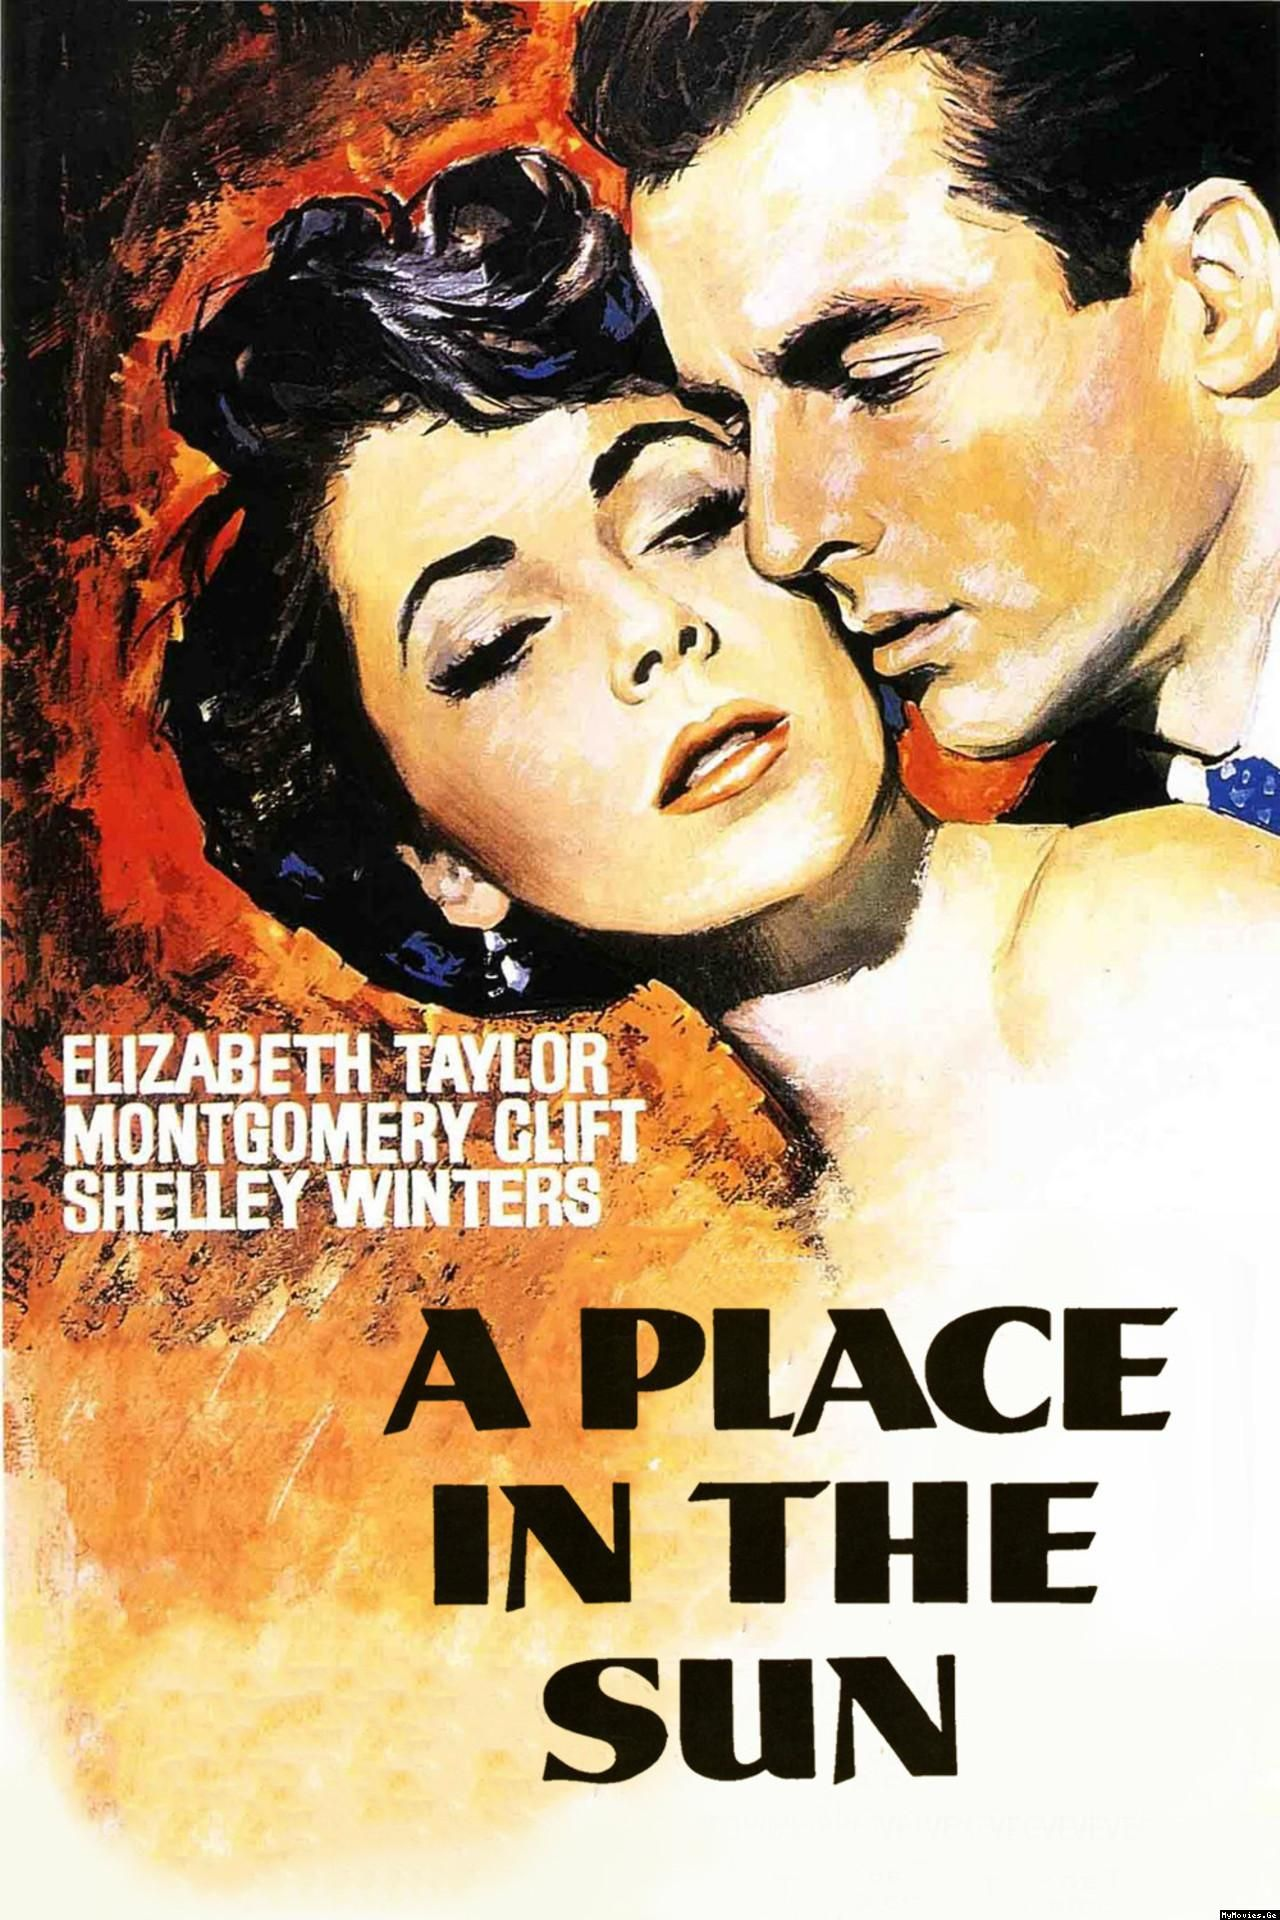 A Place In The Sun Movie Poster - Elizabeth Taylor -6790